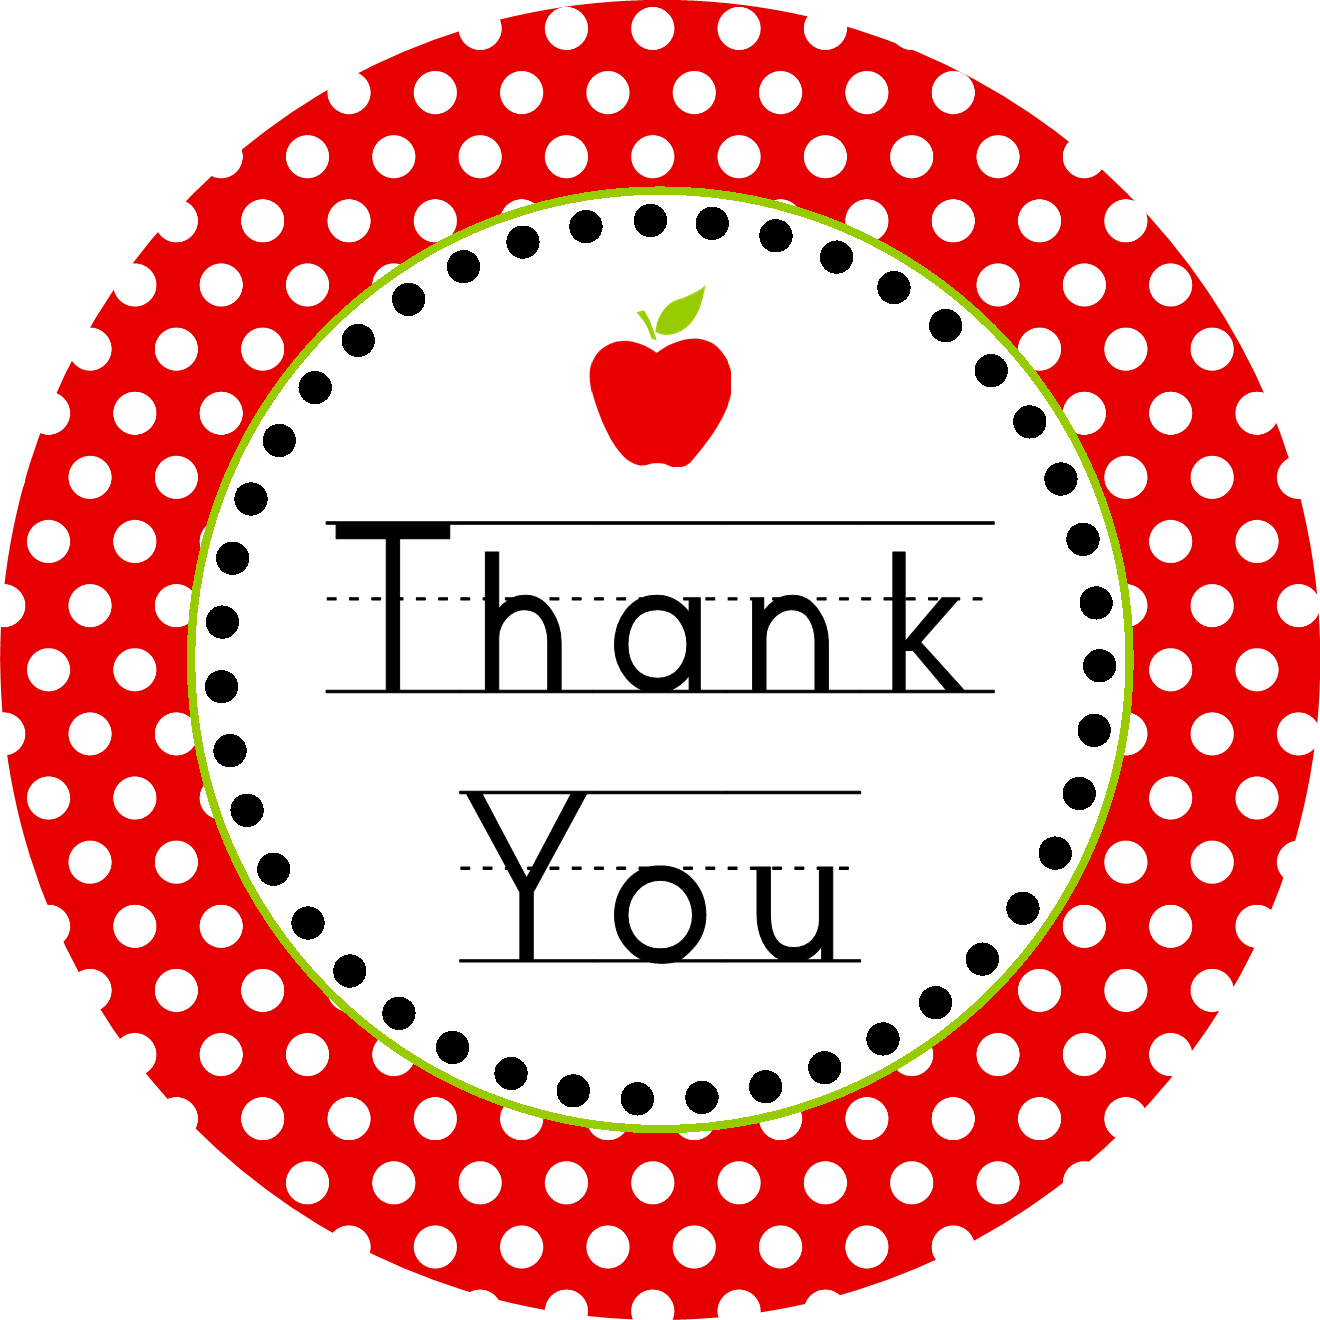 School party clipart jpg black and white stock Thank You School | Clipart Panda - Free Clipart Images jpg black and white stock